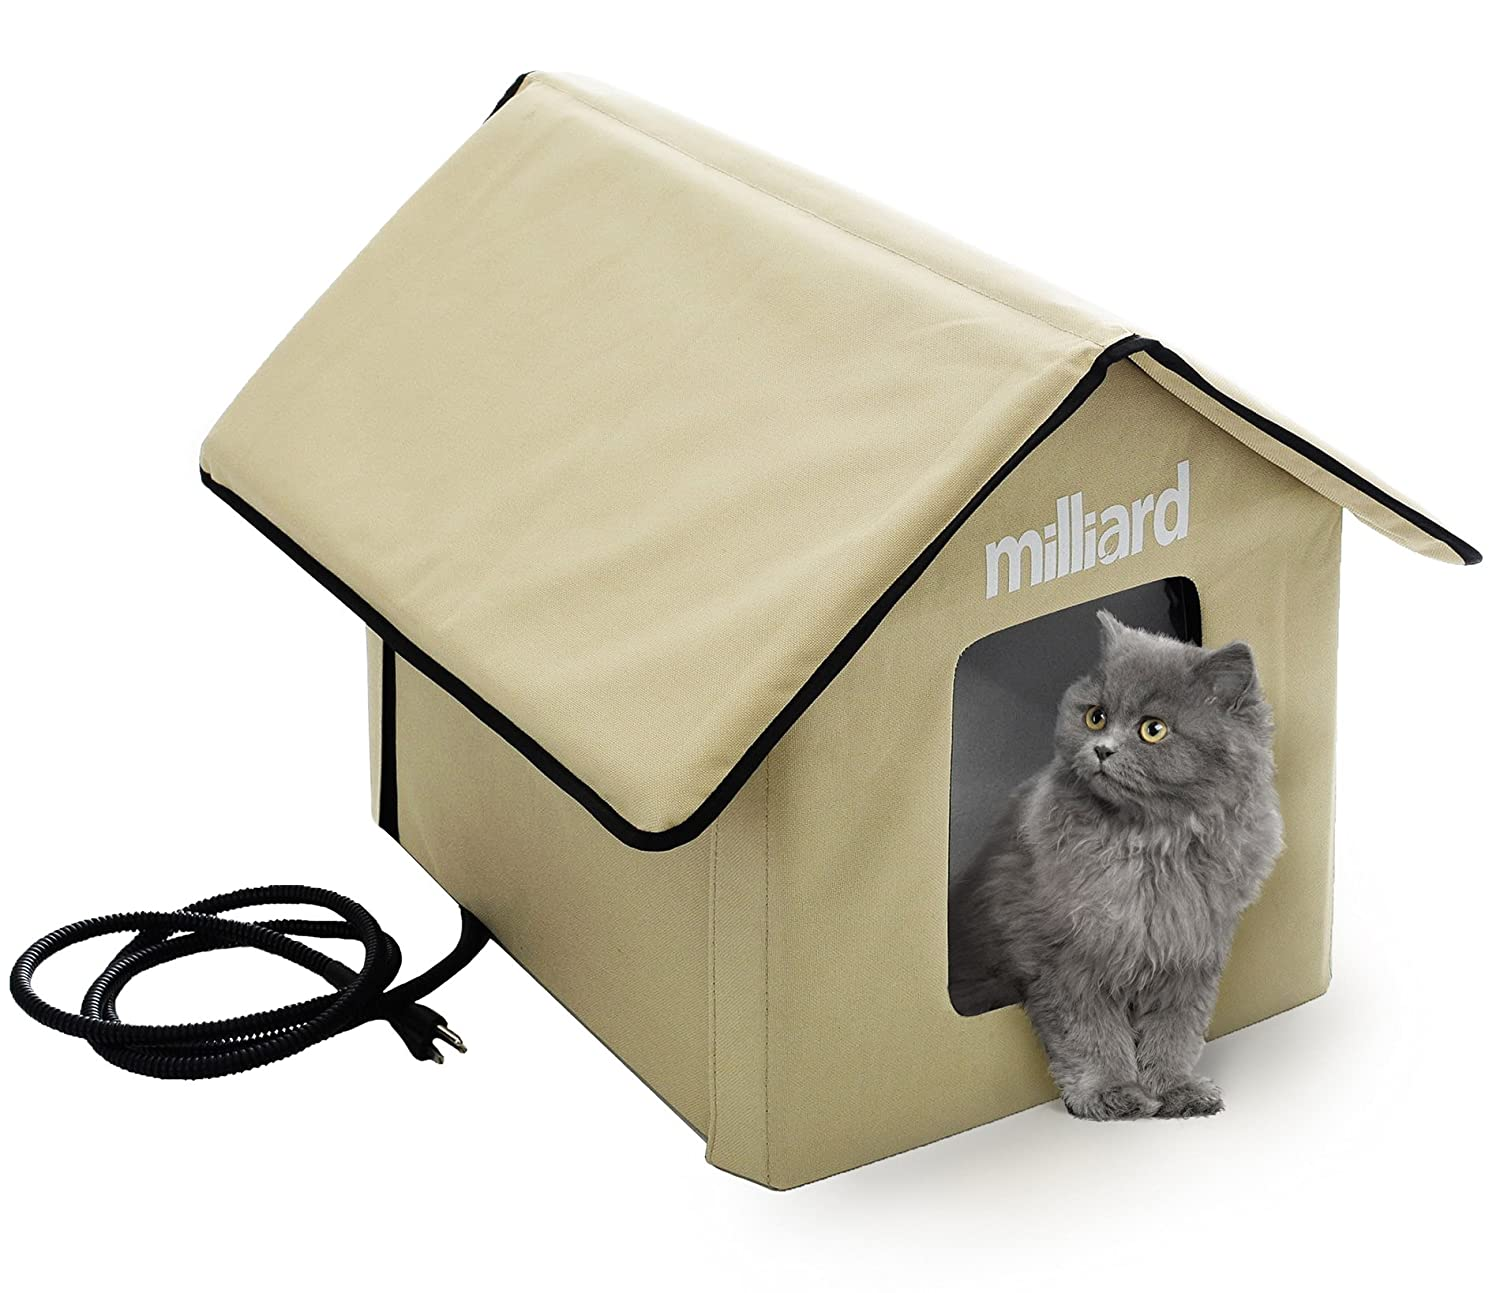 Amazon.com : Milliard Heated Cat House, Outdoor Pet House Small ...